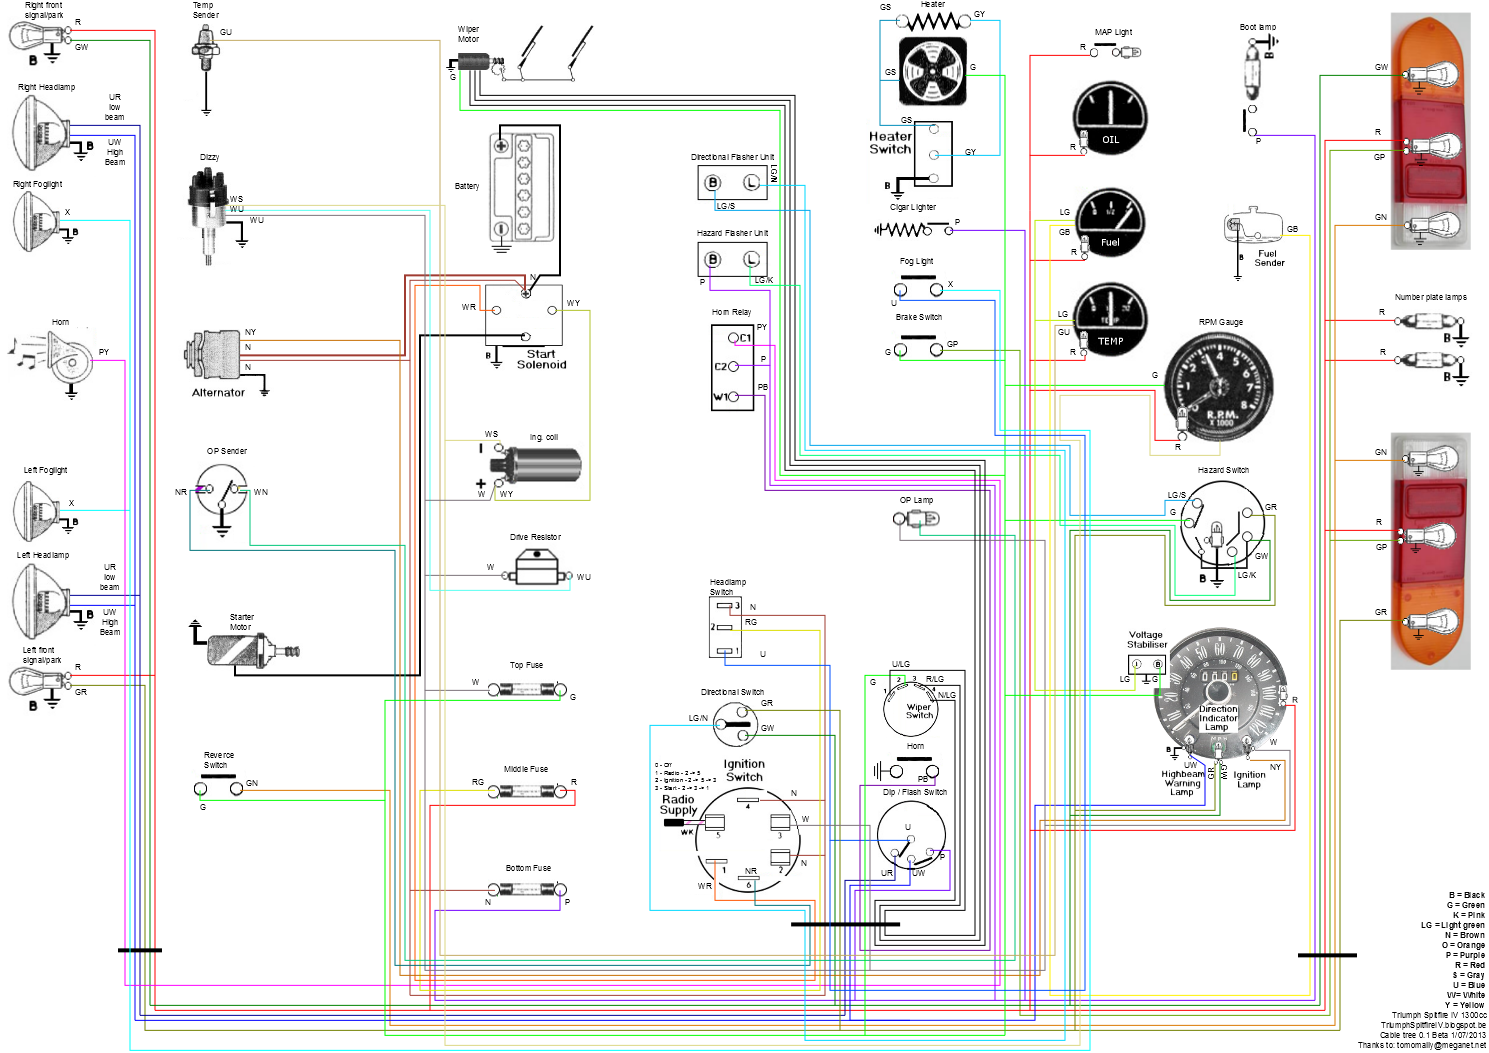 spitfire iv wiring diagram spitfire mkiv wiring diagram how to library the triumph experience 73 triumph spitfire 1500 wiring harness at sewacar.co